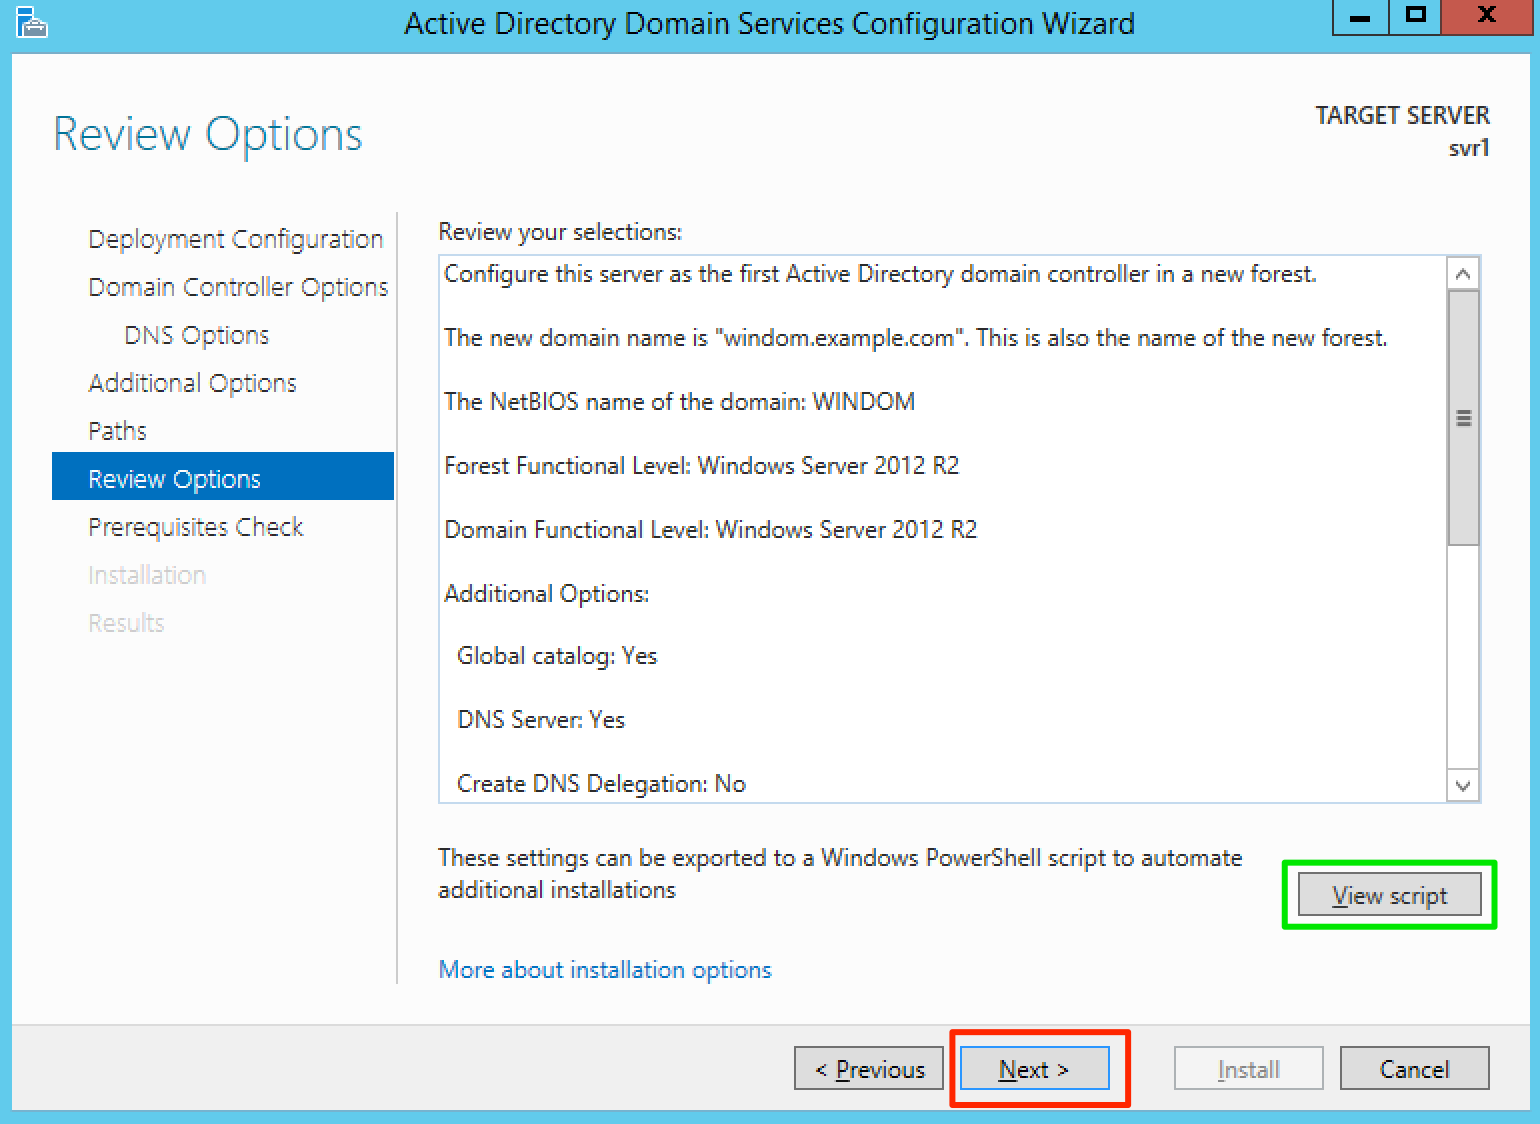 Setting up an Active Directory domain for evaluating the